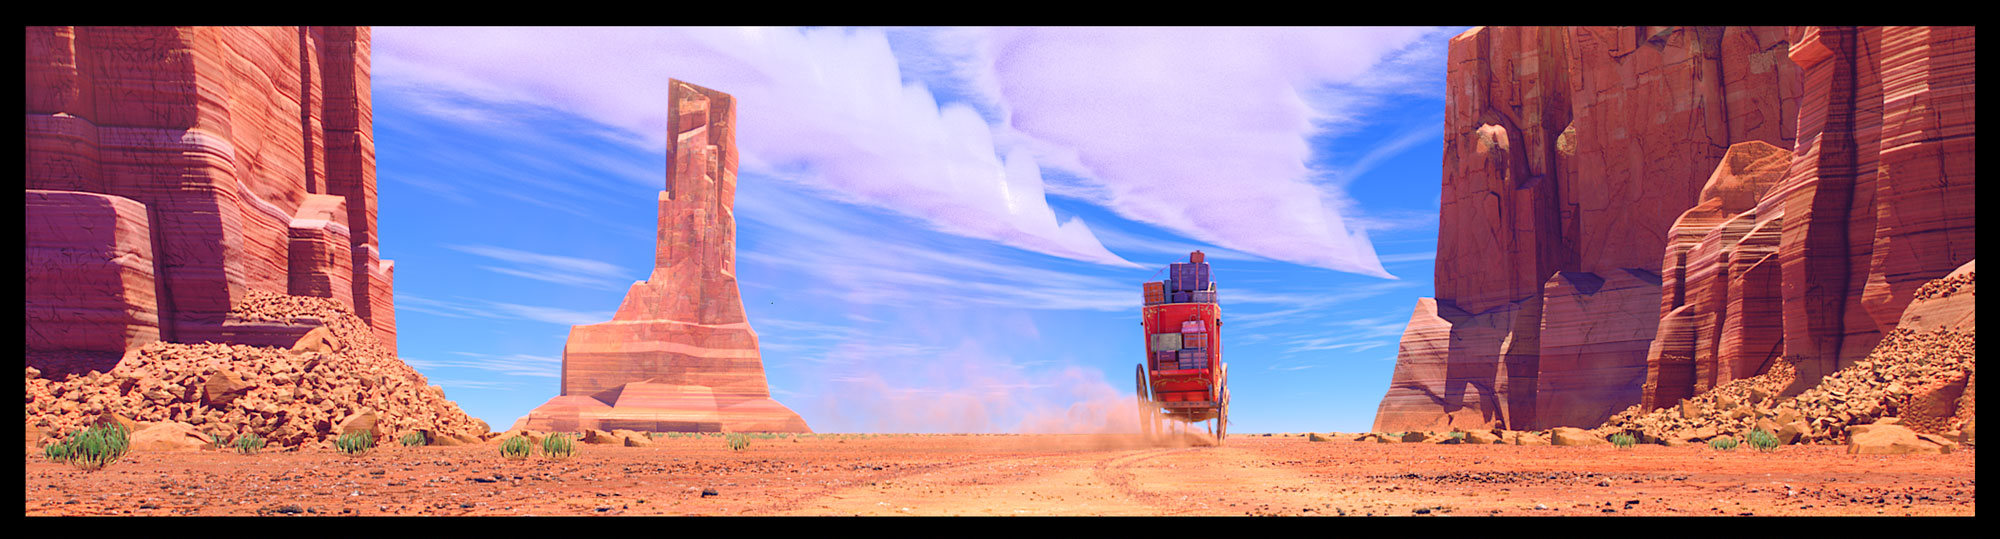 The California Desert environment in LAIKA's Missing Link